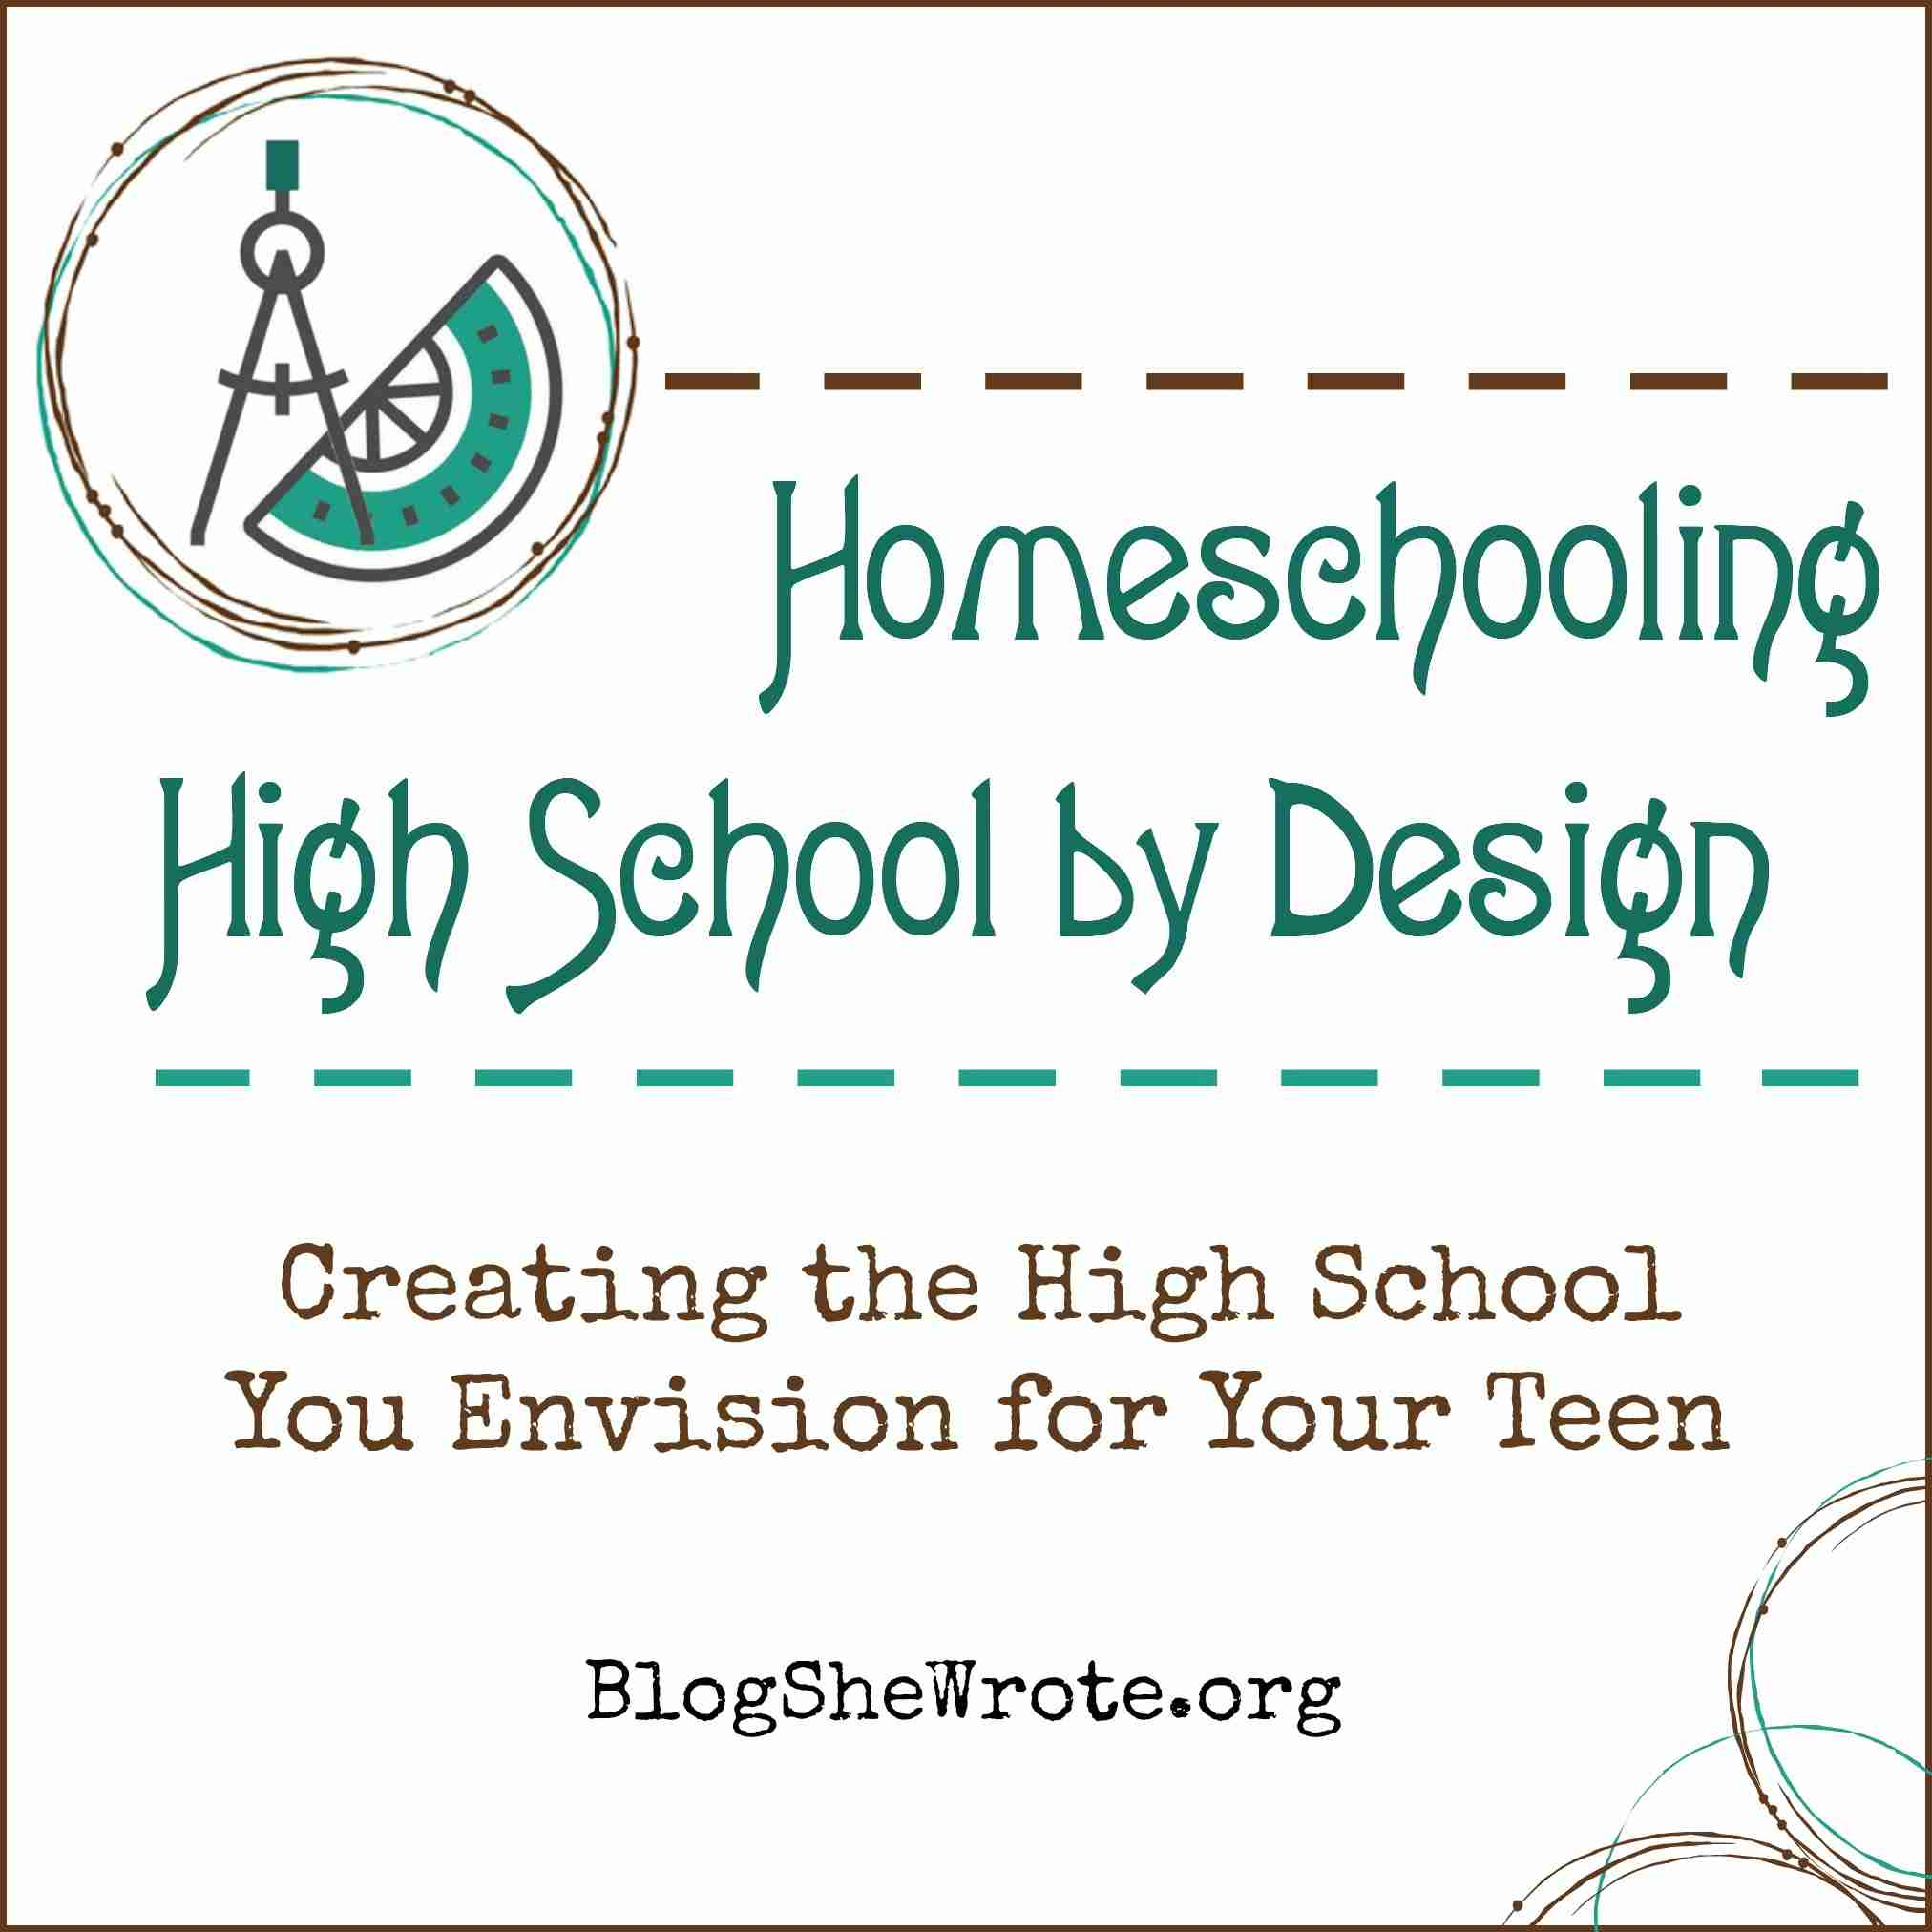 Homeschooling High School by Design